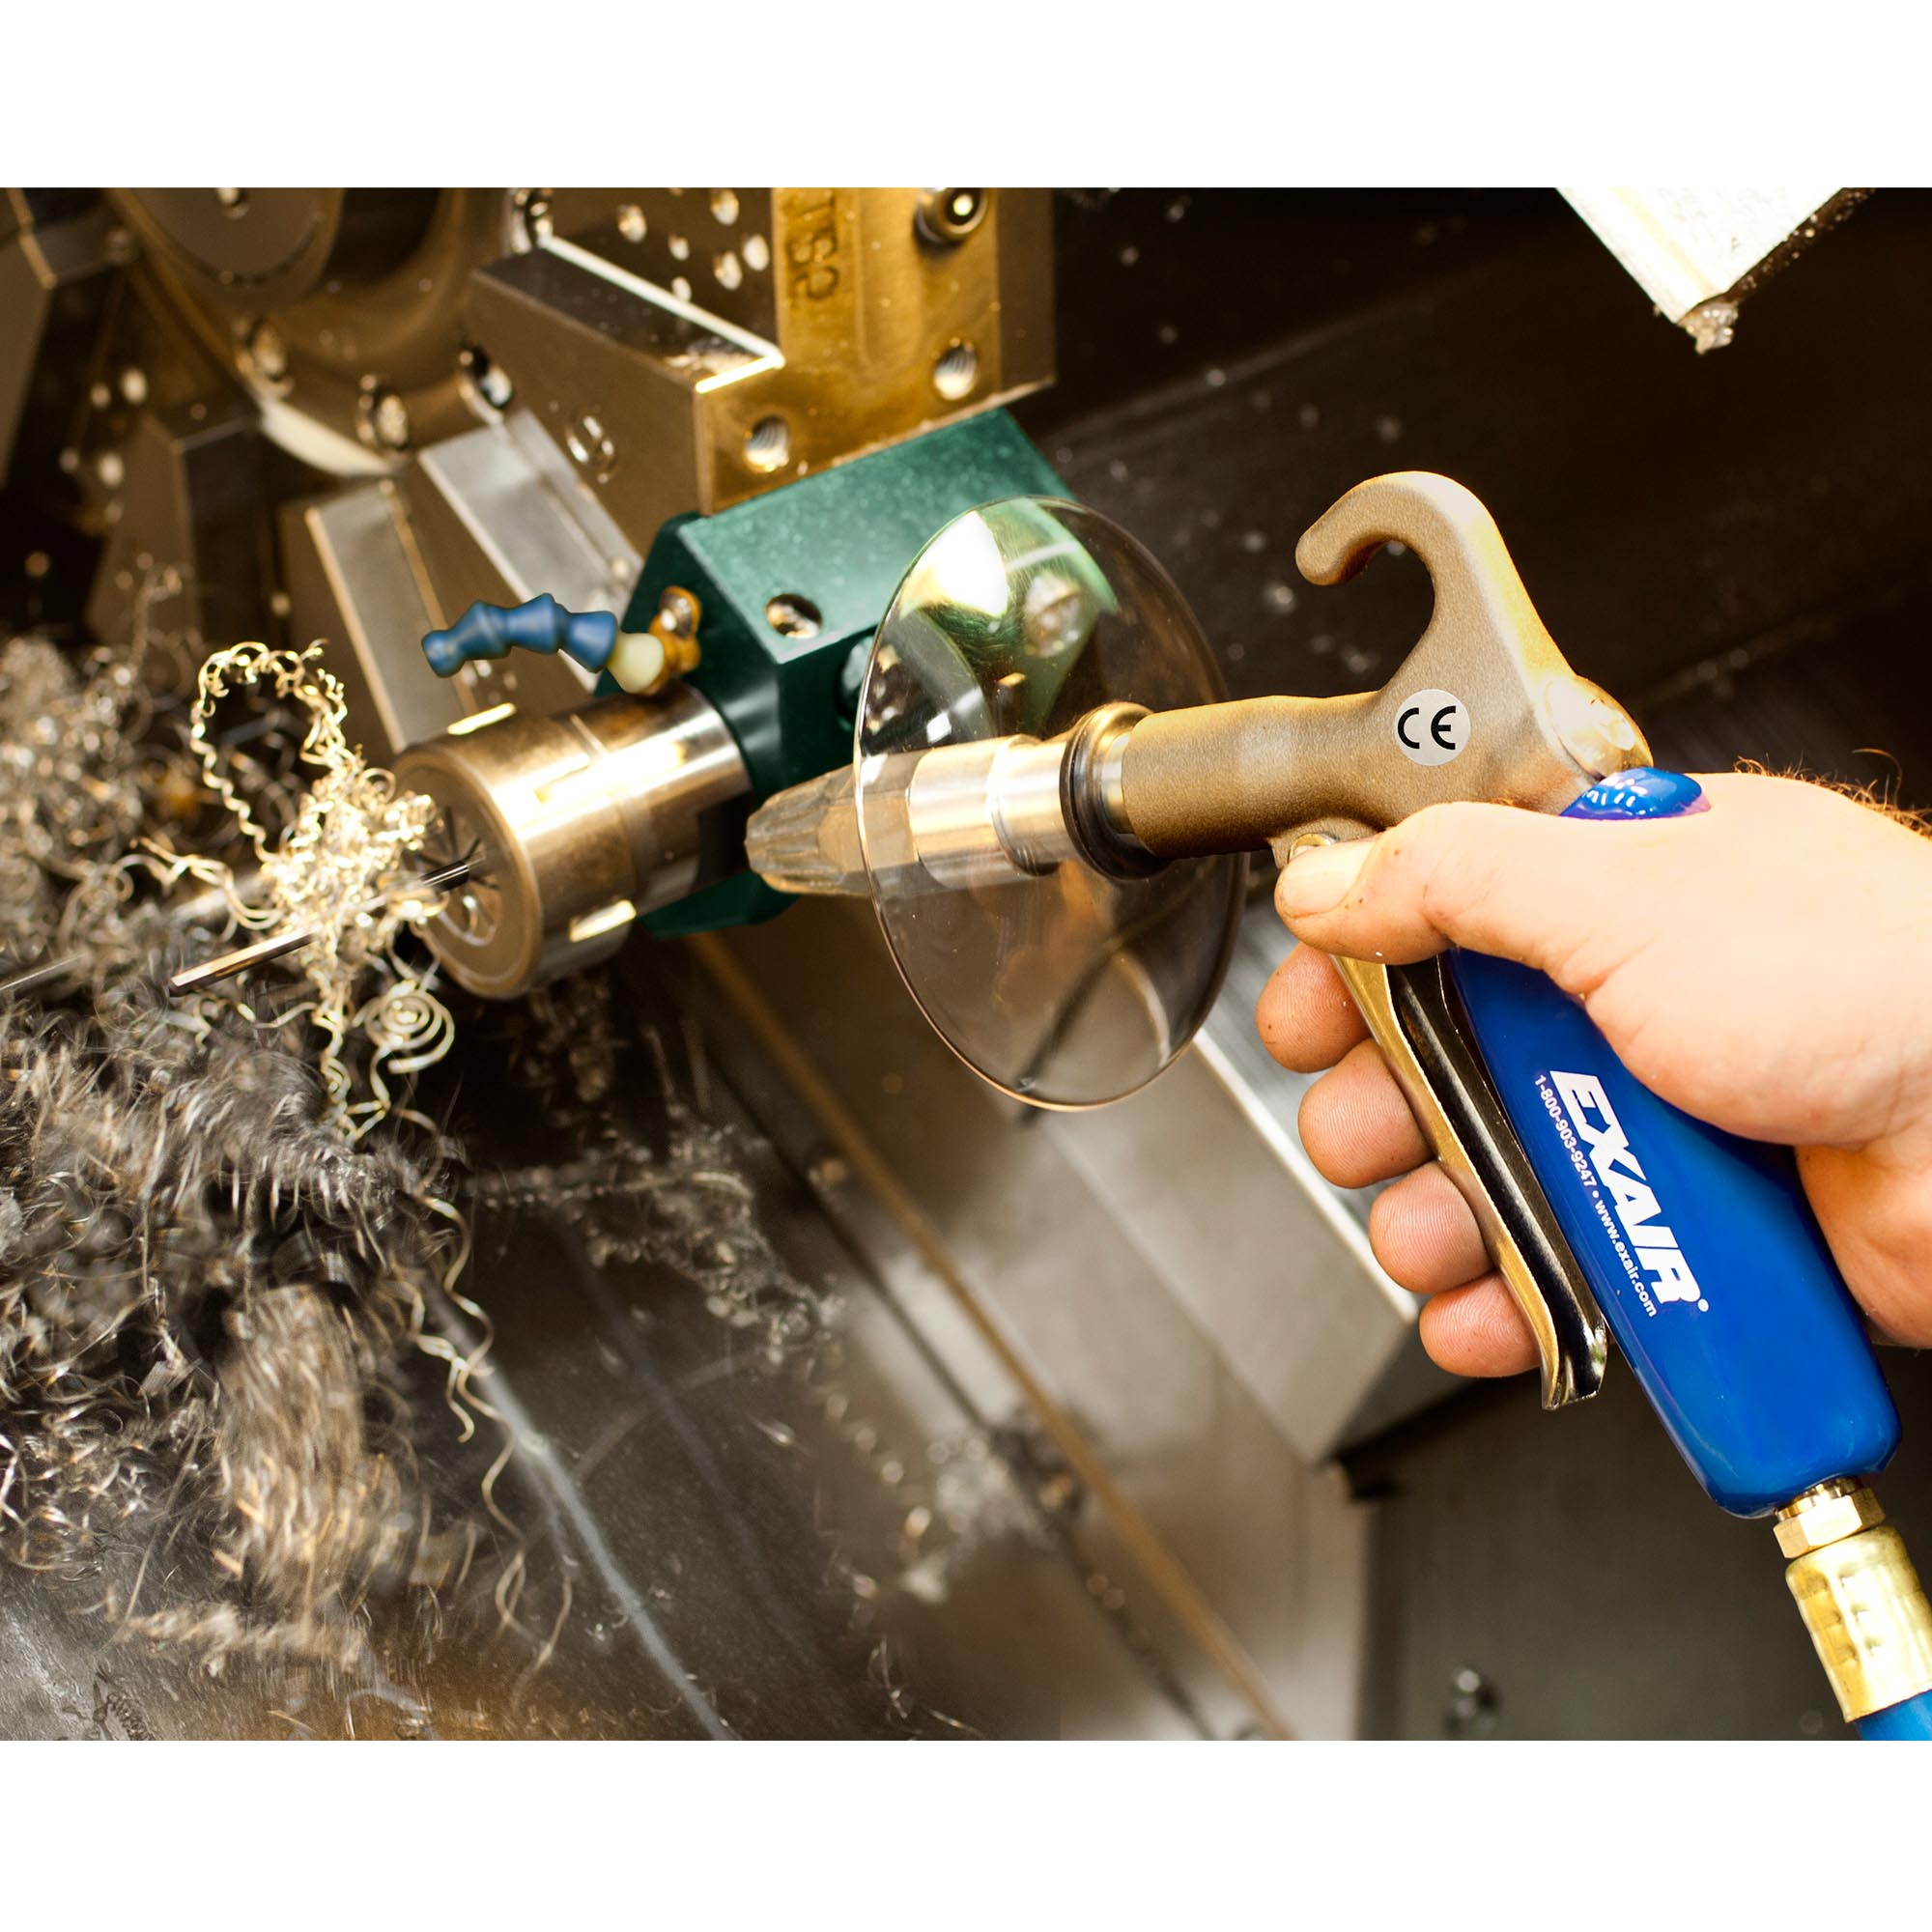 This Soft Grip Safety Air Gun is being used to blow swarf out of a CNC machine.